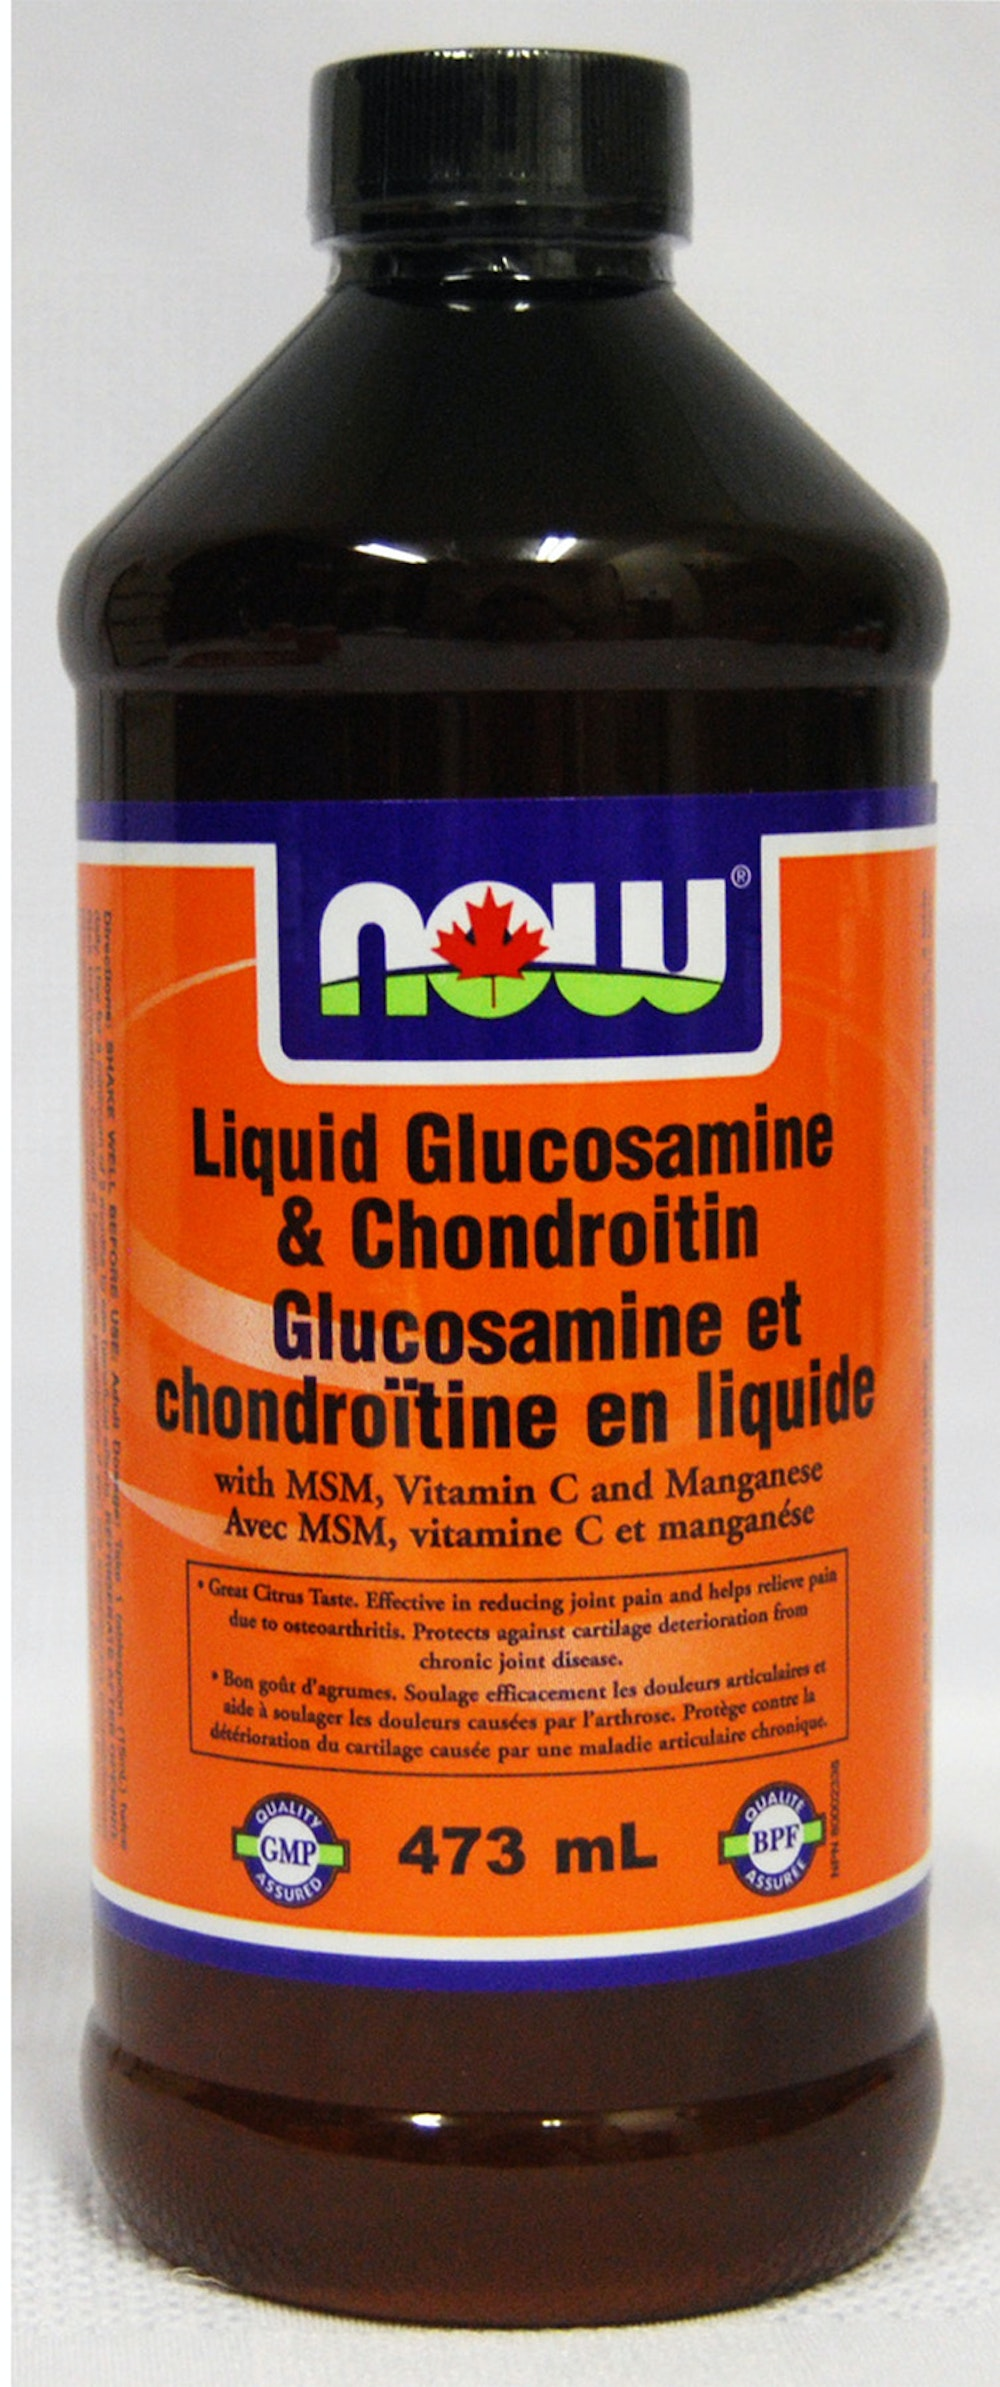 how to take glucosamine with chondroitin